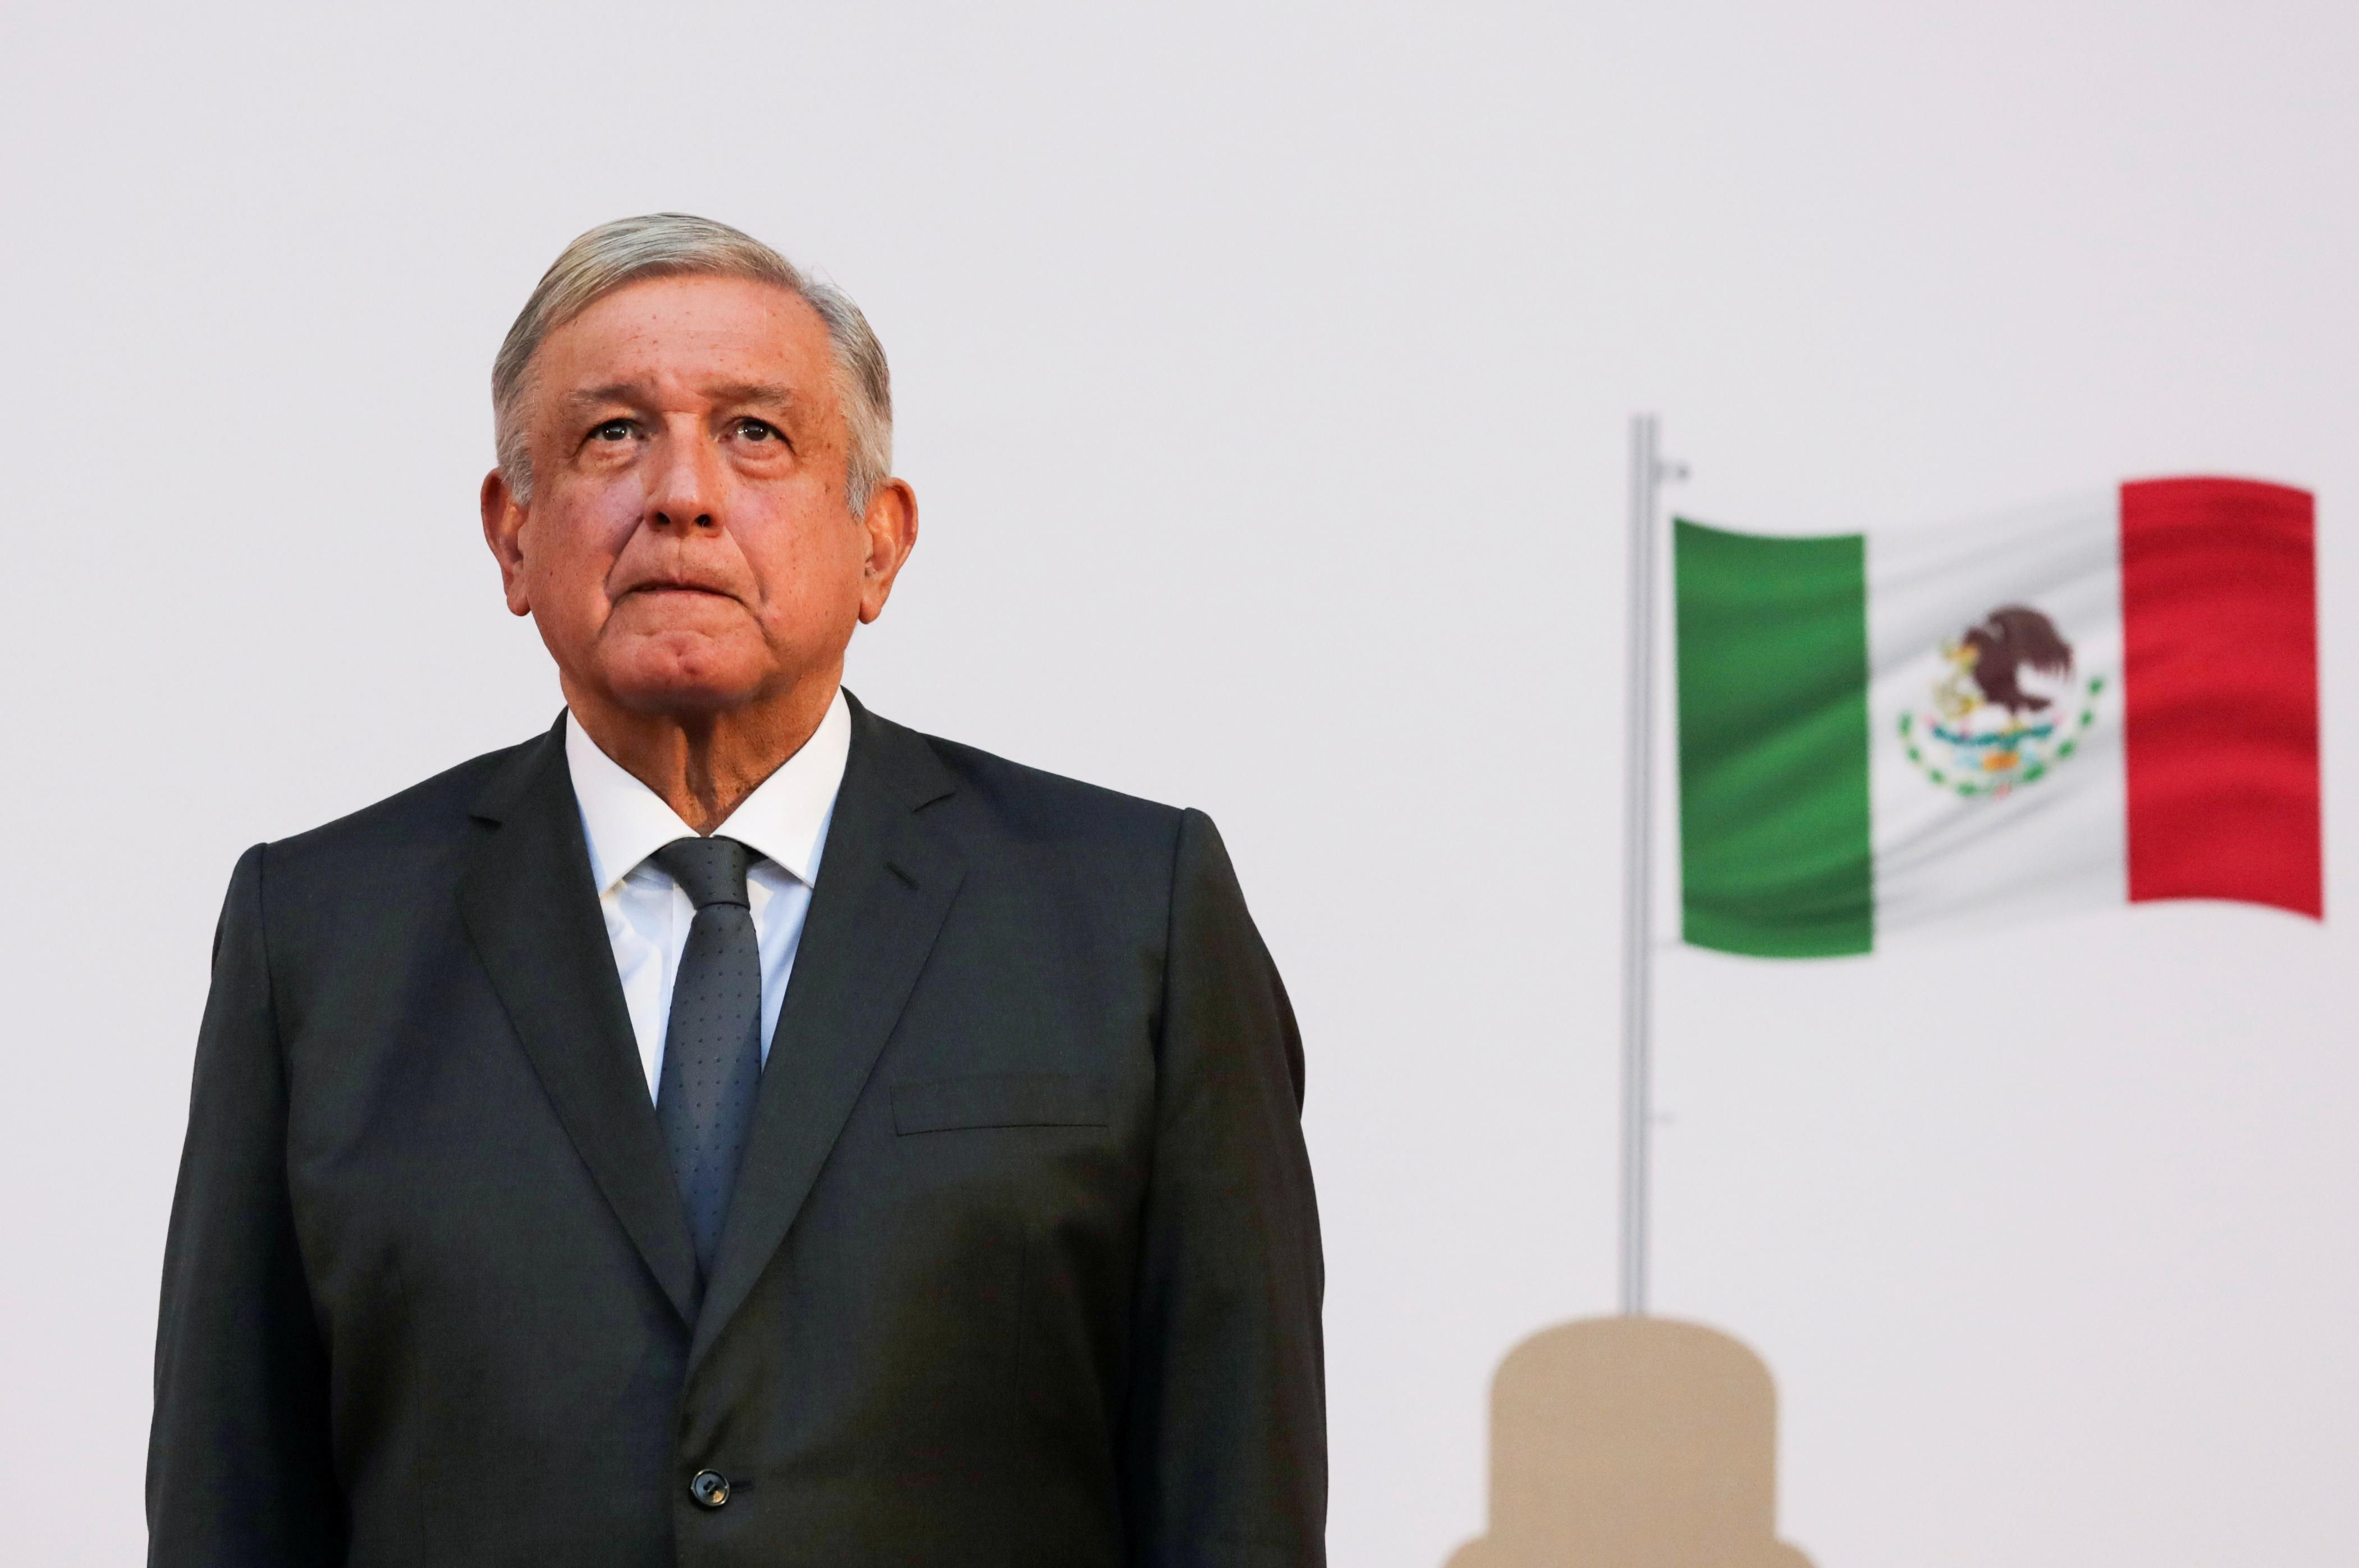 Mexico's president, Andres Manuel Lopez Obrador, listens to the national anthem after addressing the nation on his second anniversary as the President of Mexico, at the National Palace in Mexico City, Mexico, December 1, 2020.